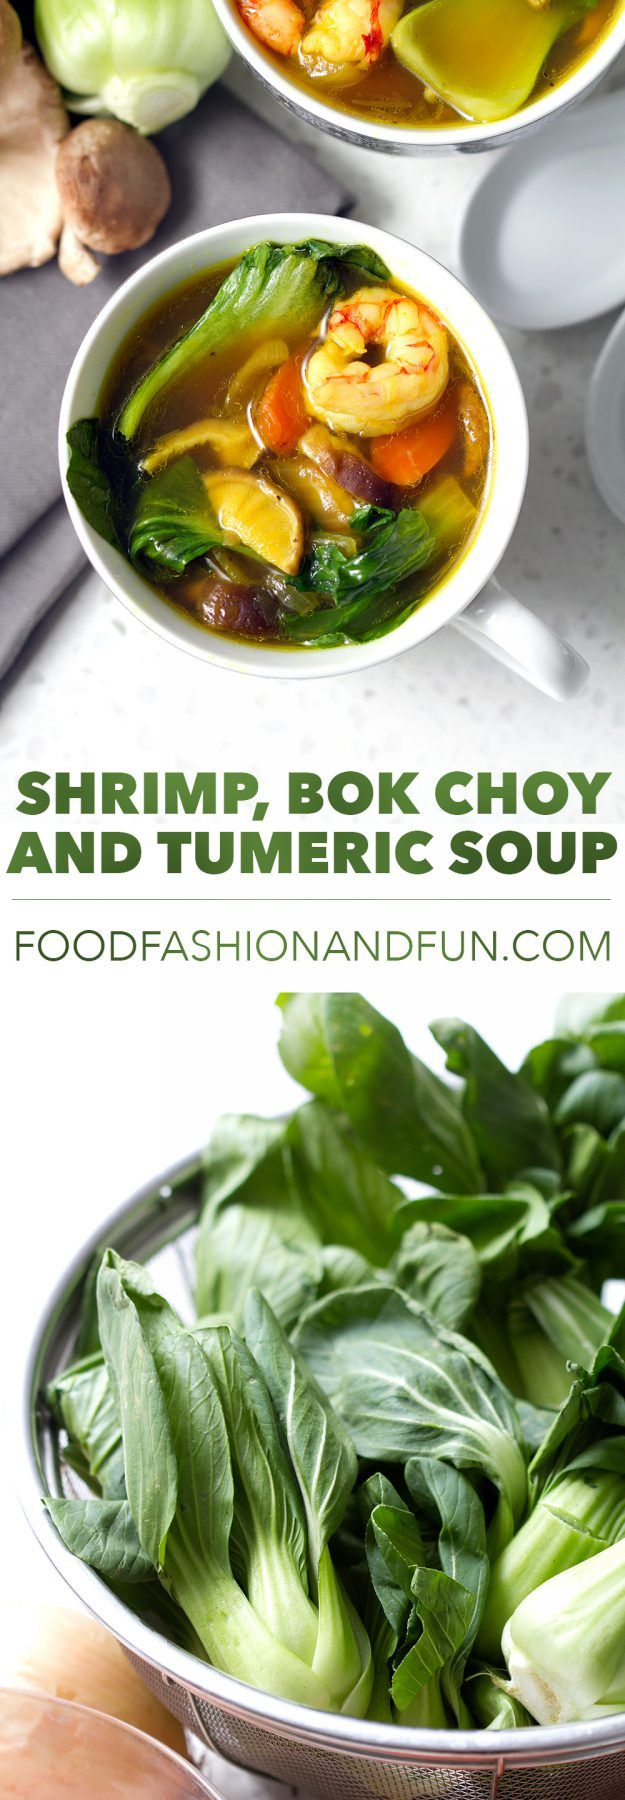 Packed full of delicious and healthy ingredients like turmeric, bok choy and shrimp for a healthy gluten free soup recipe.